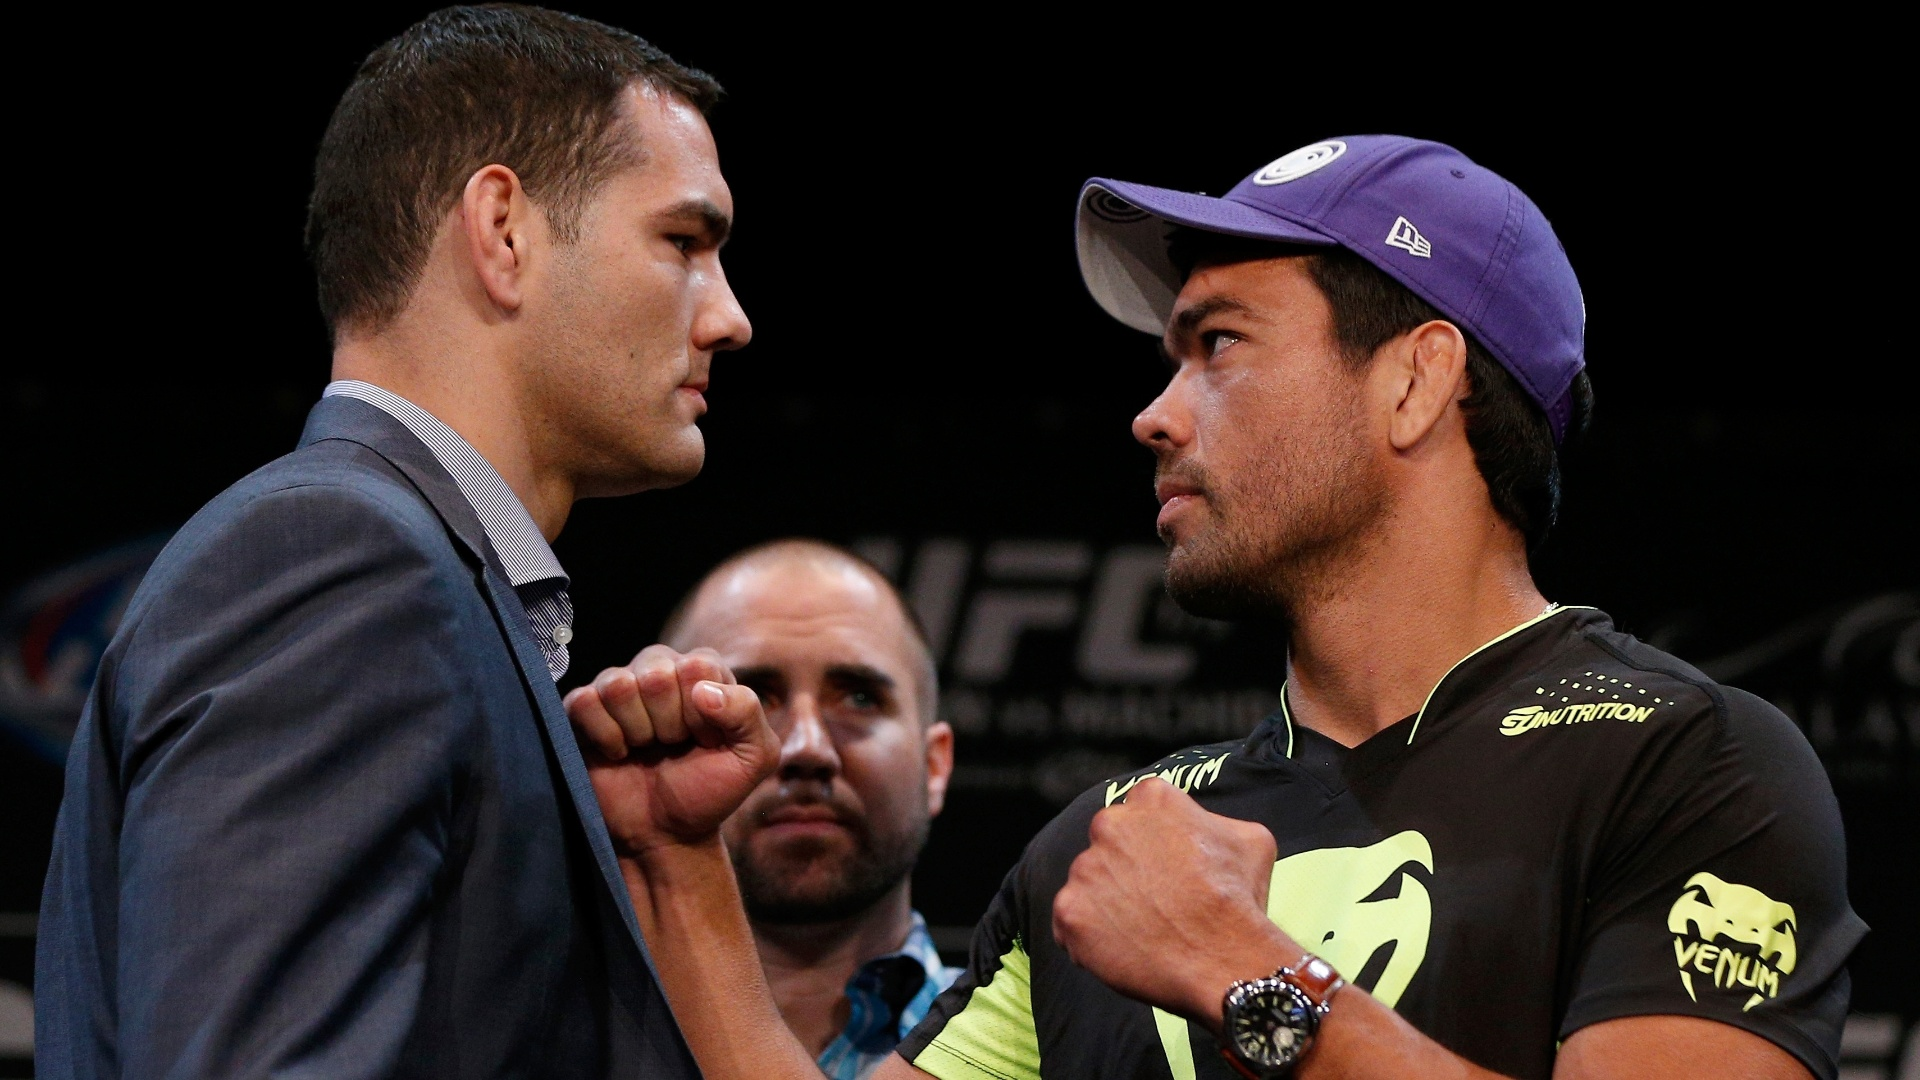 Chris Weidman e Lyoto Machida se encaram antes do UFC 175